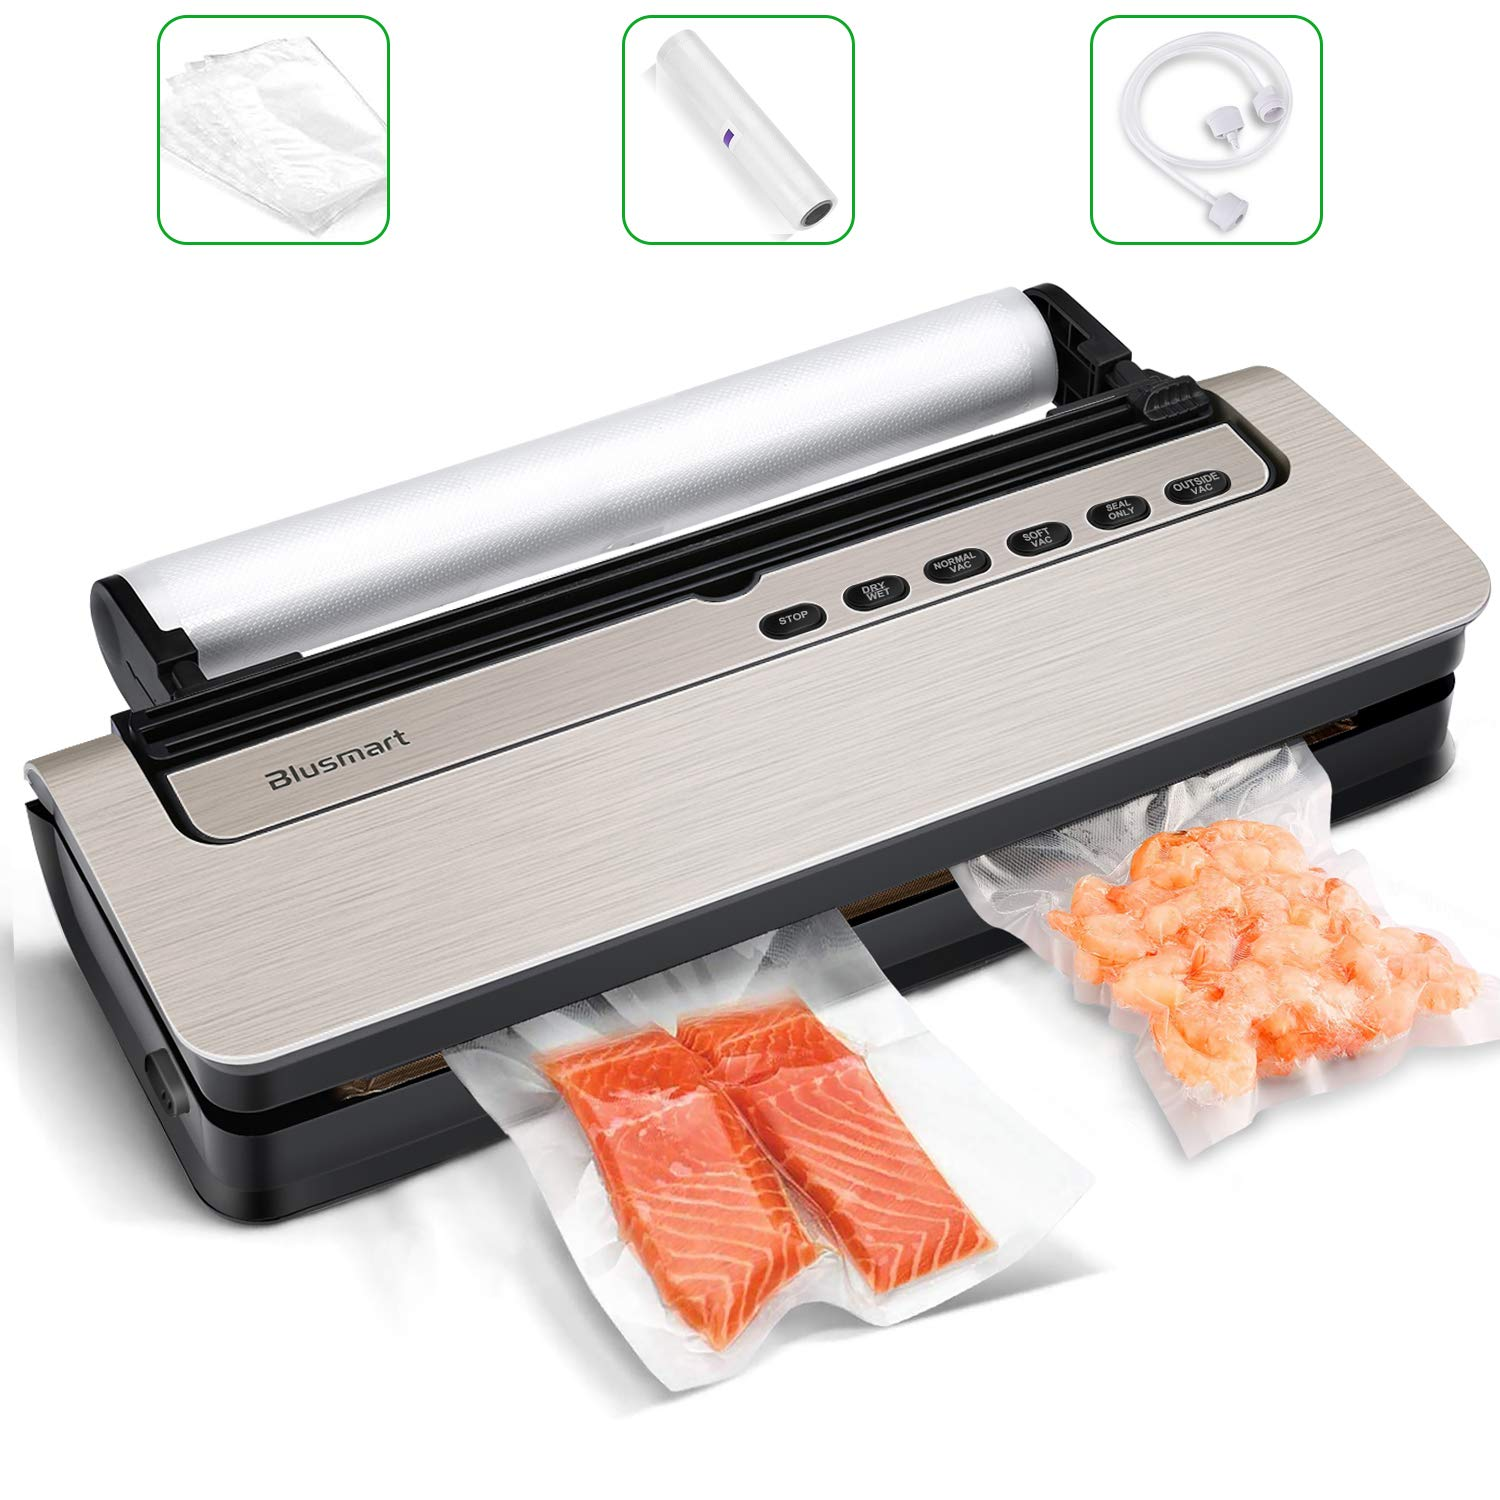 Vacuum Sealer Blusmart 80Kpa Food Sealer Machine Automatic Air Sealing System for FoodSaver Storage with Dry and Moist Modes. Starter Kit with Holder, Roll/Bags & Hose